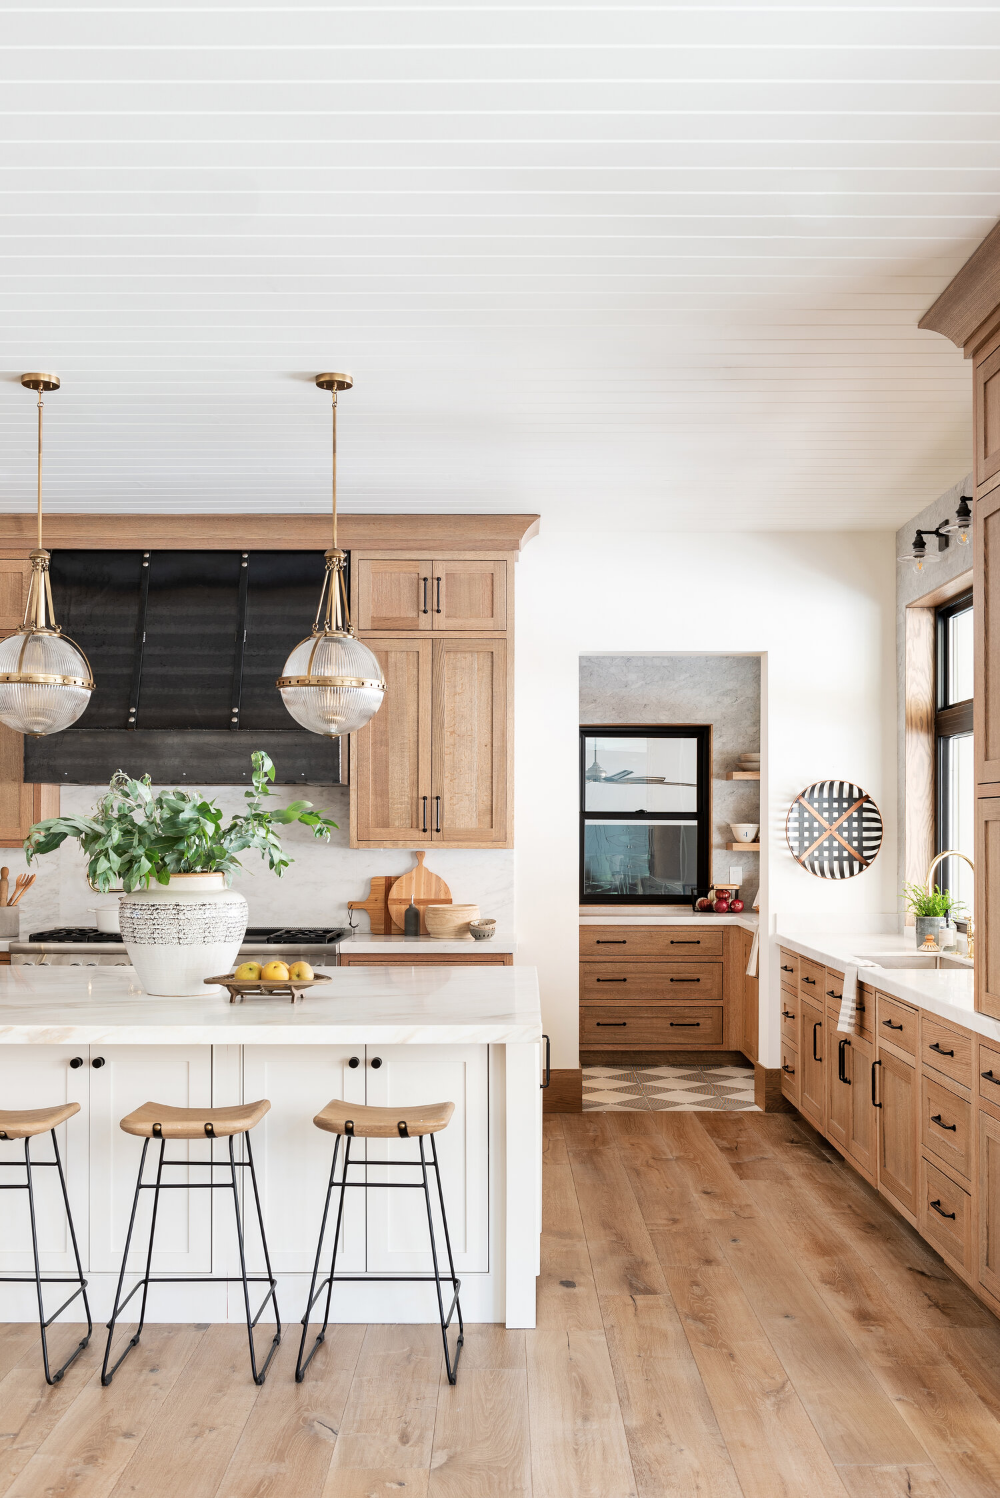 Best Natural Wood Kitchen Design In 2019 Home Decor Latest 400 x 300